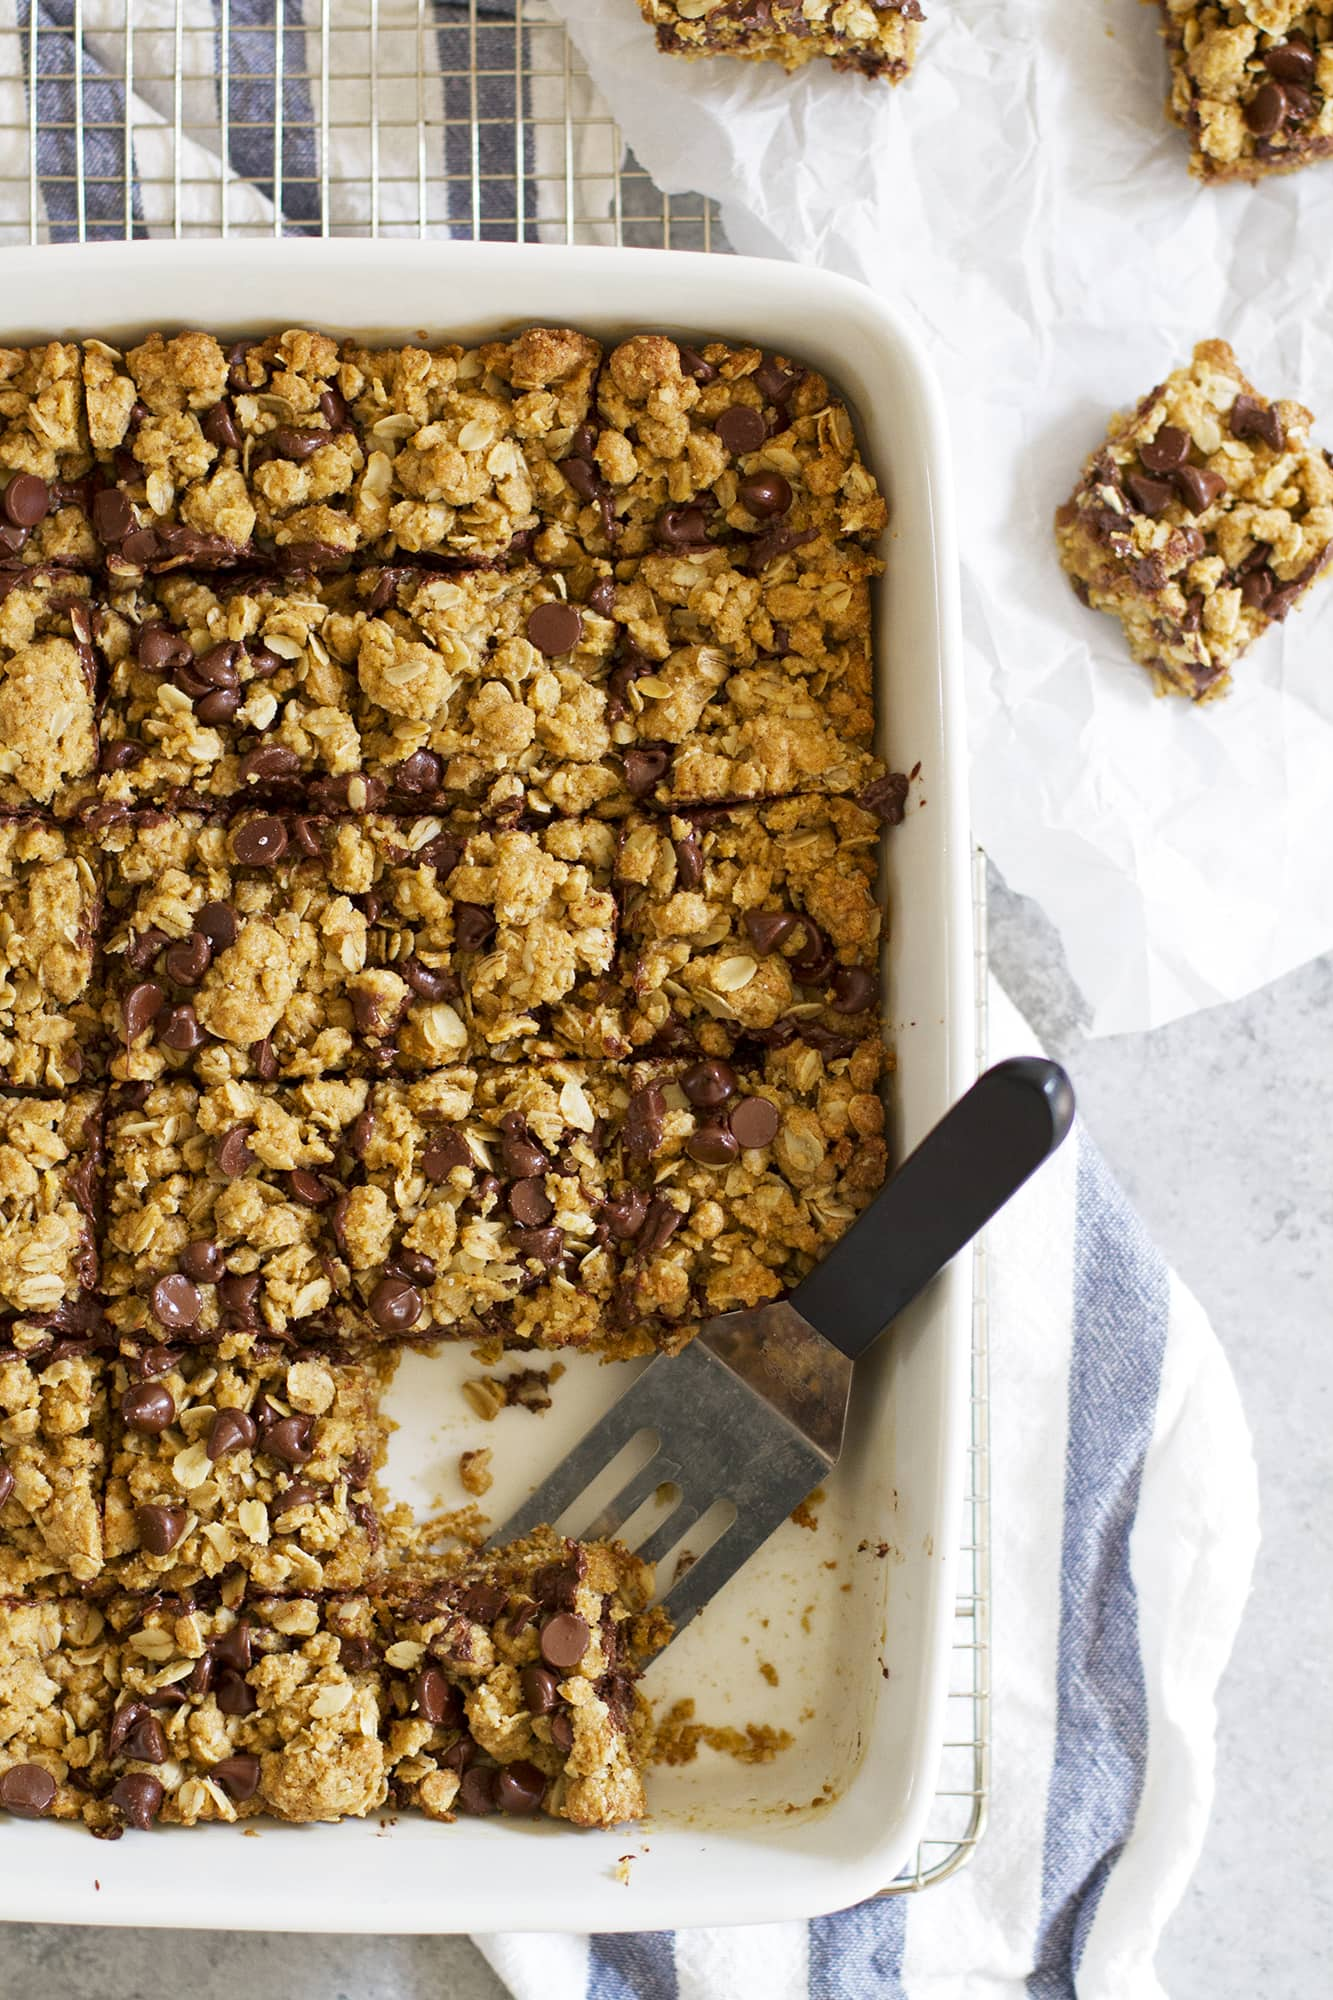 whole wheat oatmeal chocolate chip cookie bar in baking dish